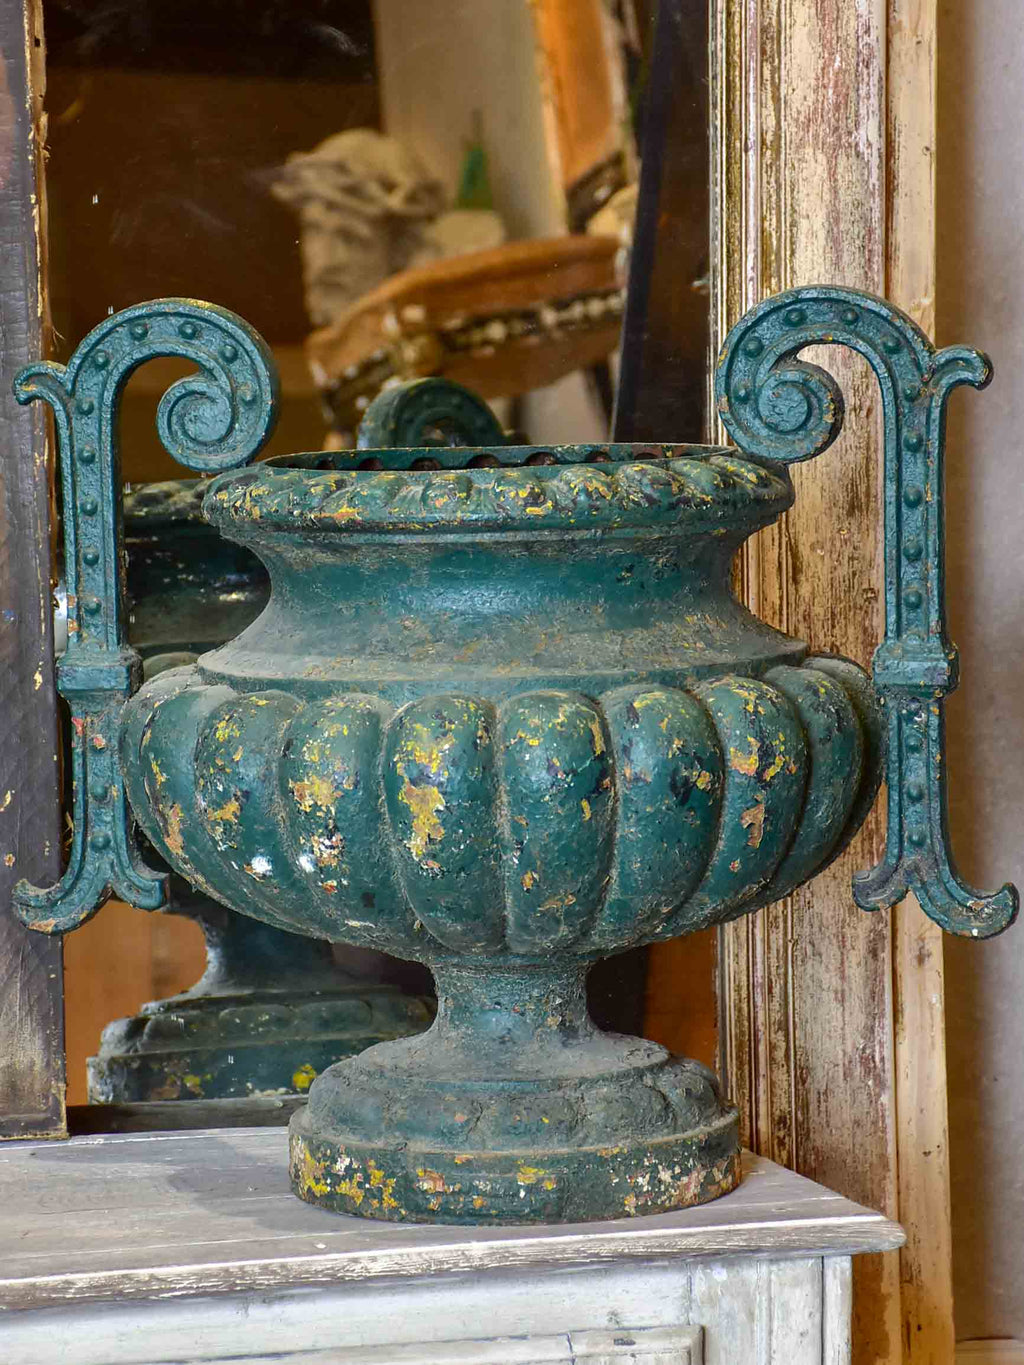 Very large 19th Century French garden urn with green patina